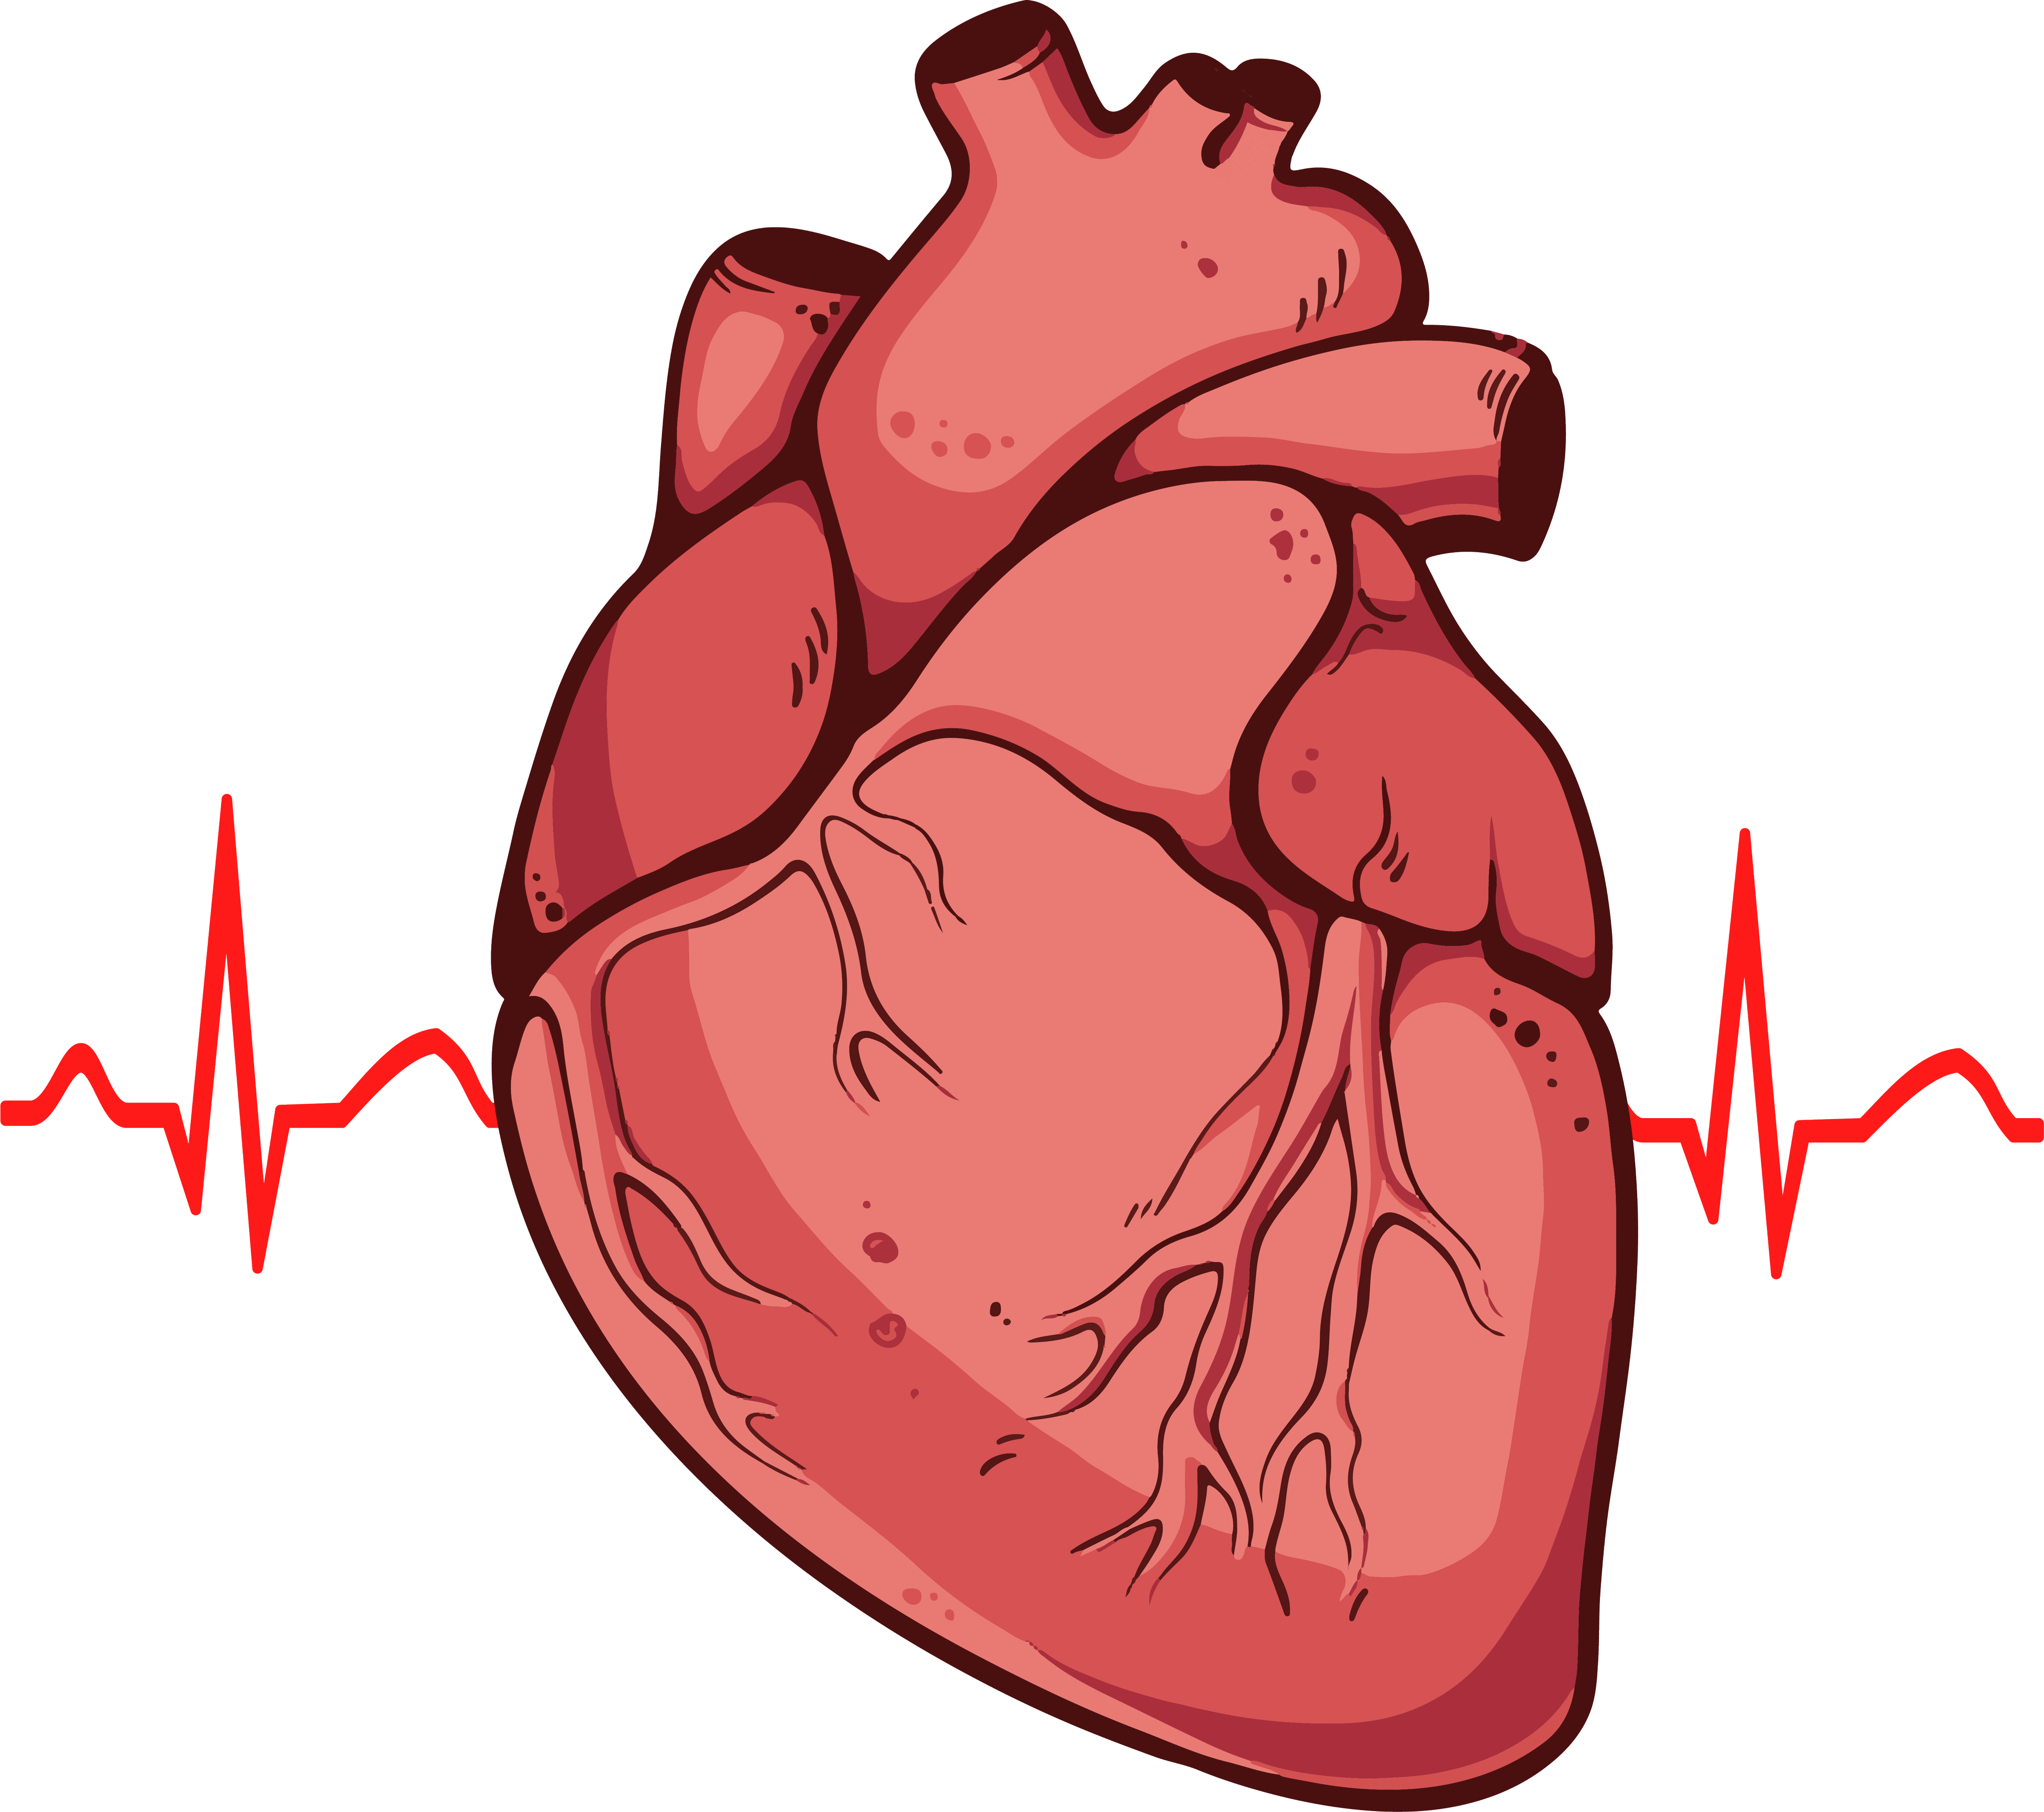 Organs clipart real heart Real Png  Heart